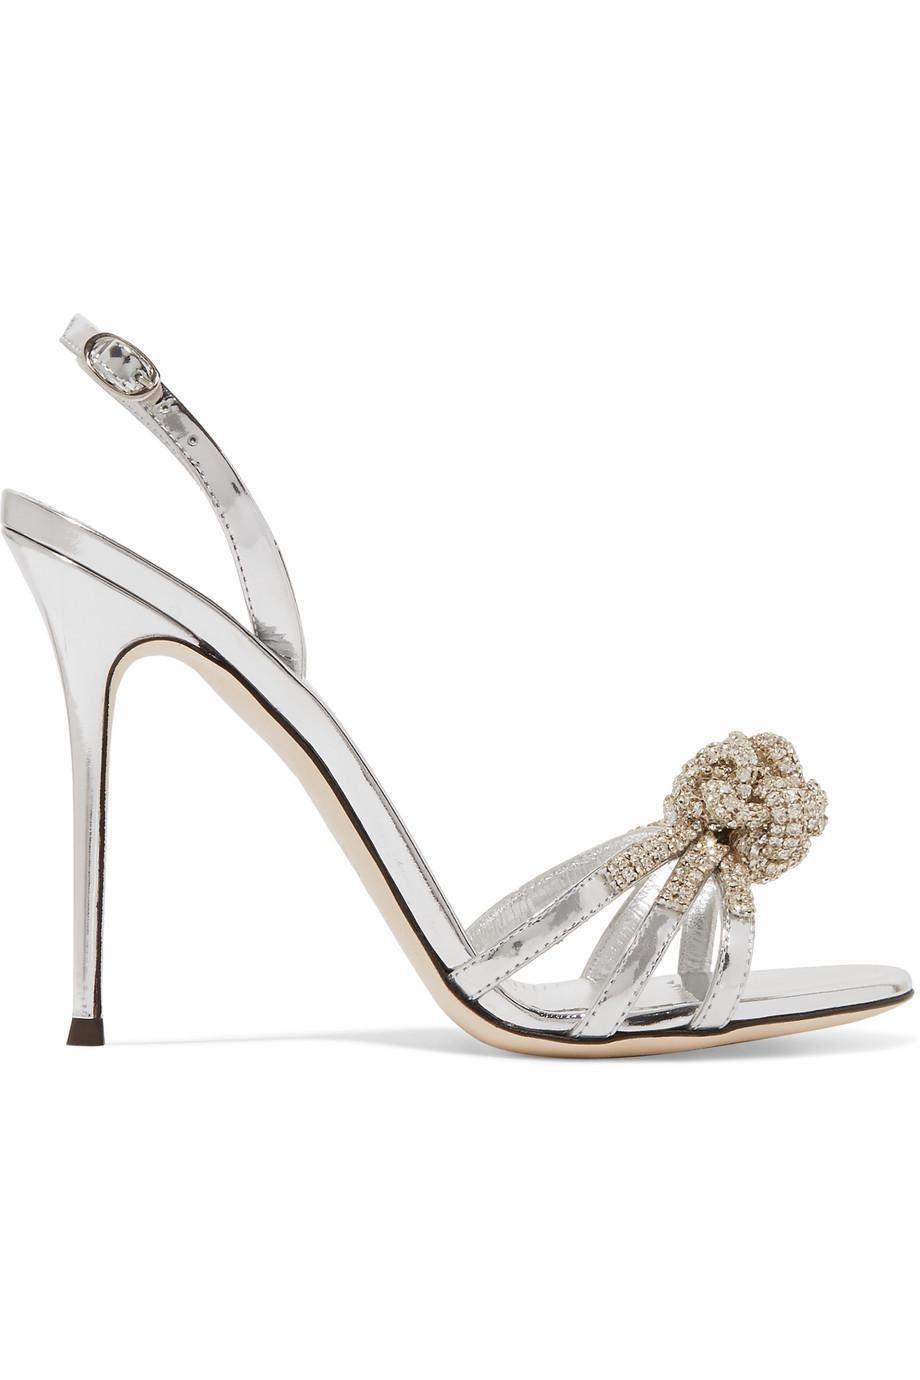 Mistico Crystal-embellished Metallic Leather Sandals - Silver Giuseppe Zanotti